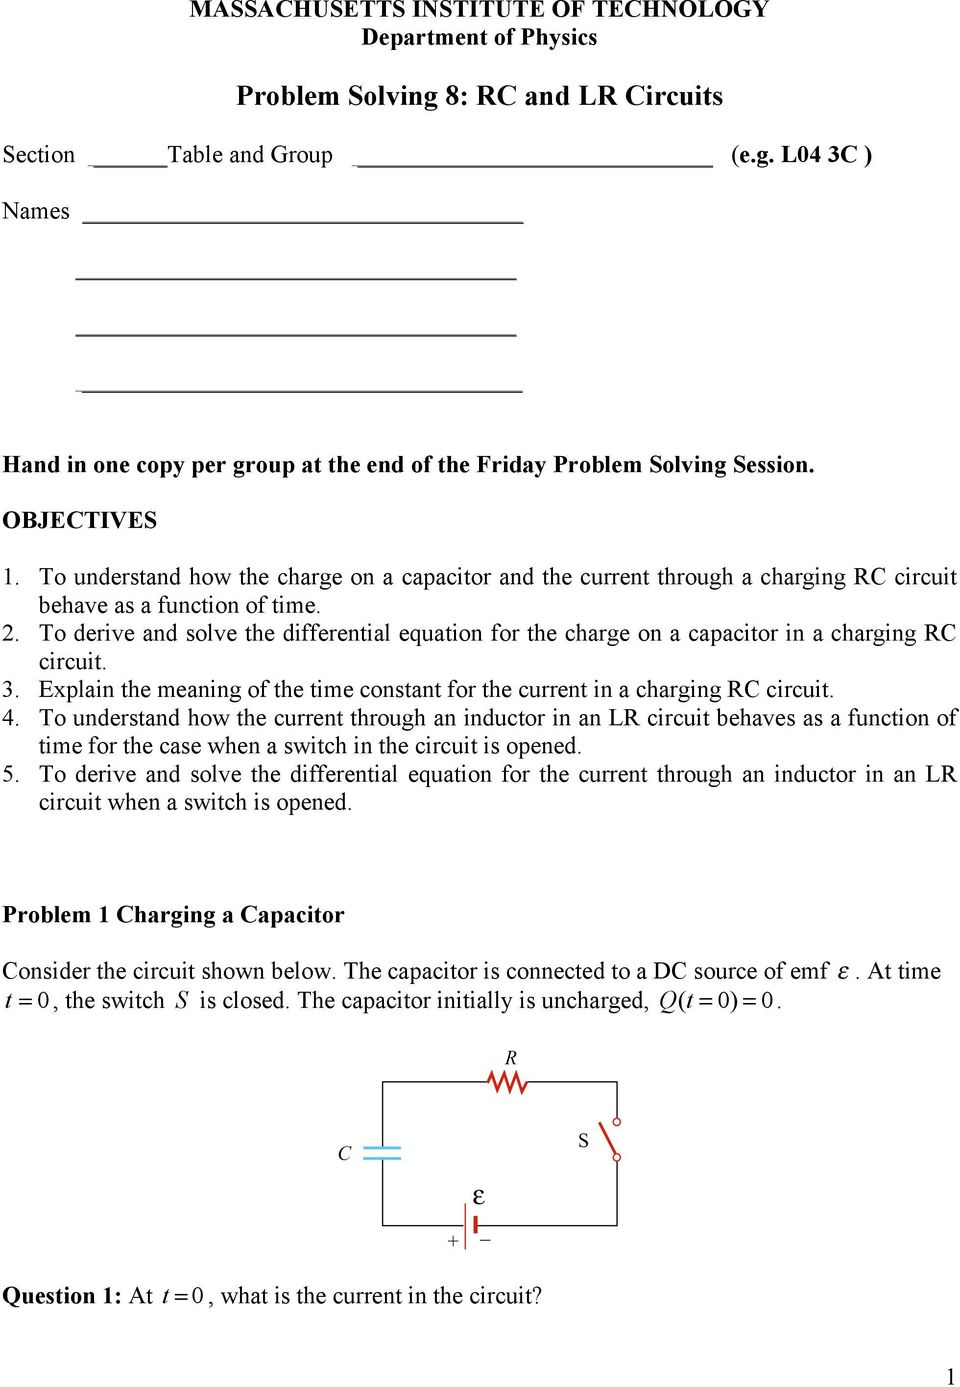 Problem Solving 8 Rc And Lr Circuits Pdf Some Parallel Have Switches In As The Circuit Shown To Derive Solve Differential Equation For Charge On A Capacitor Charging